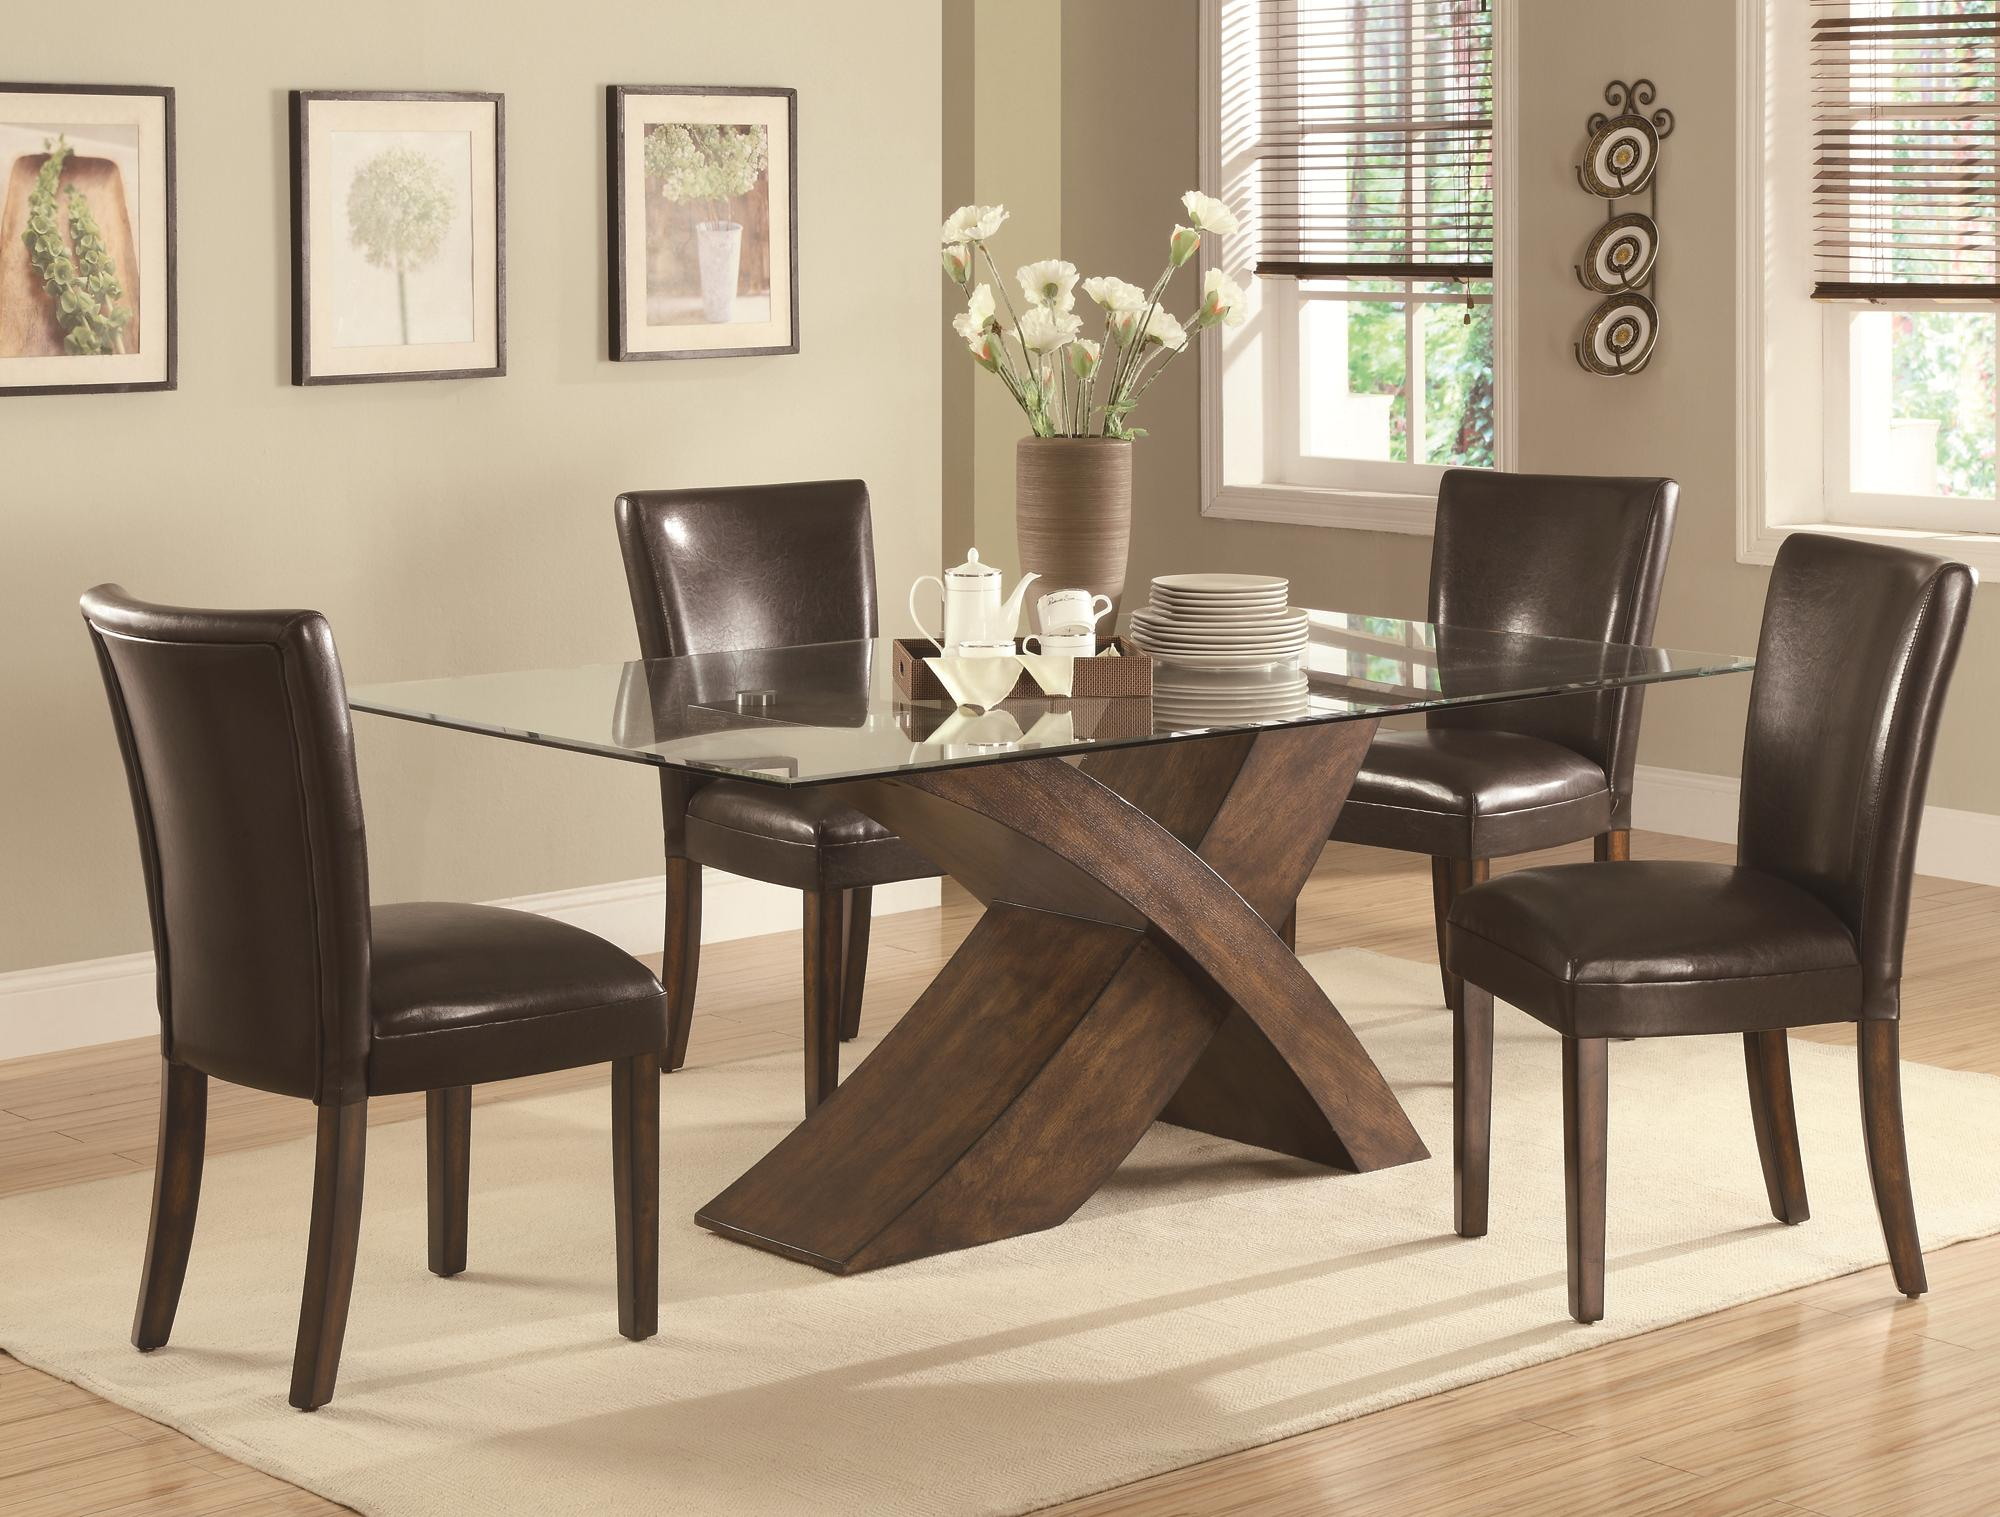 Coaster Nessa 5 Piece Table & Chair Set - Item Number: 103051+4x53